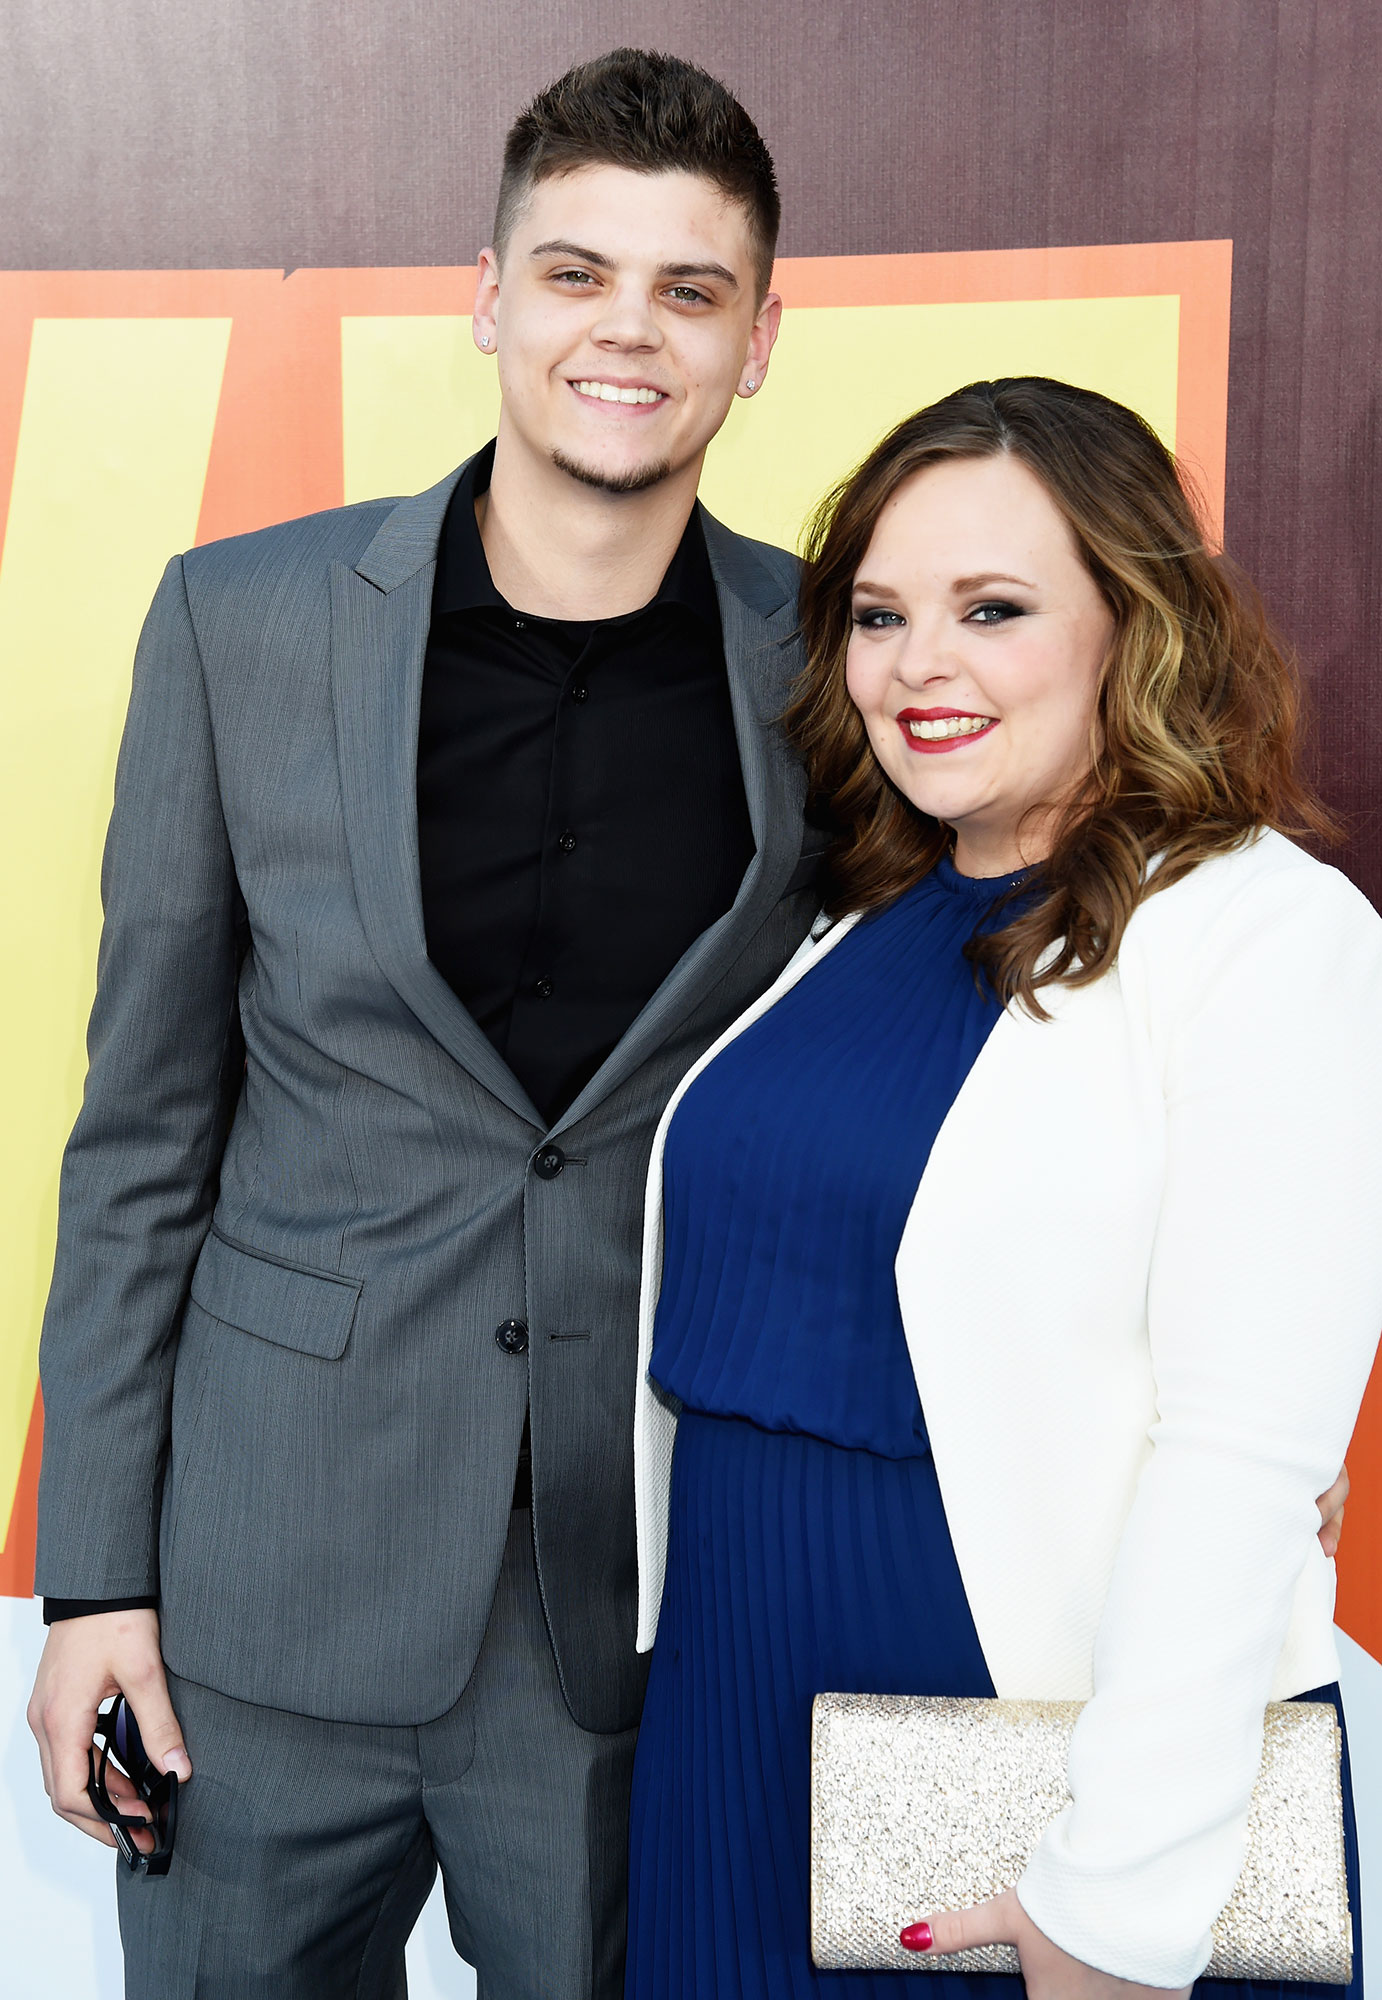 Catelynn Lowell Tyler Baltierra - TV personalities Tyler Baltierra (L) and Catelynn Lowell attend The 2015 MTV Movie Awards at Nokia Theatre L.A. Live on April 12, 2015 in Los Angeles, California.